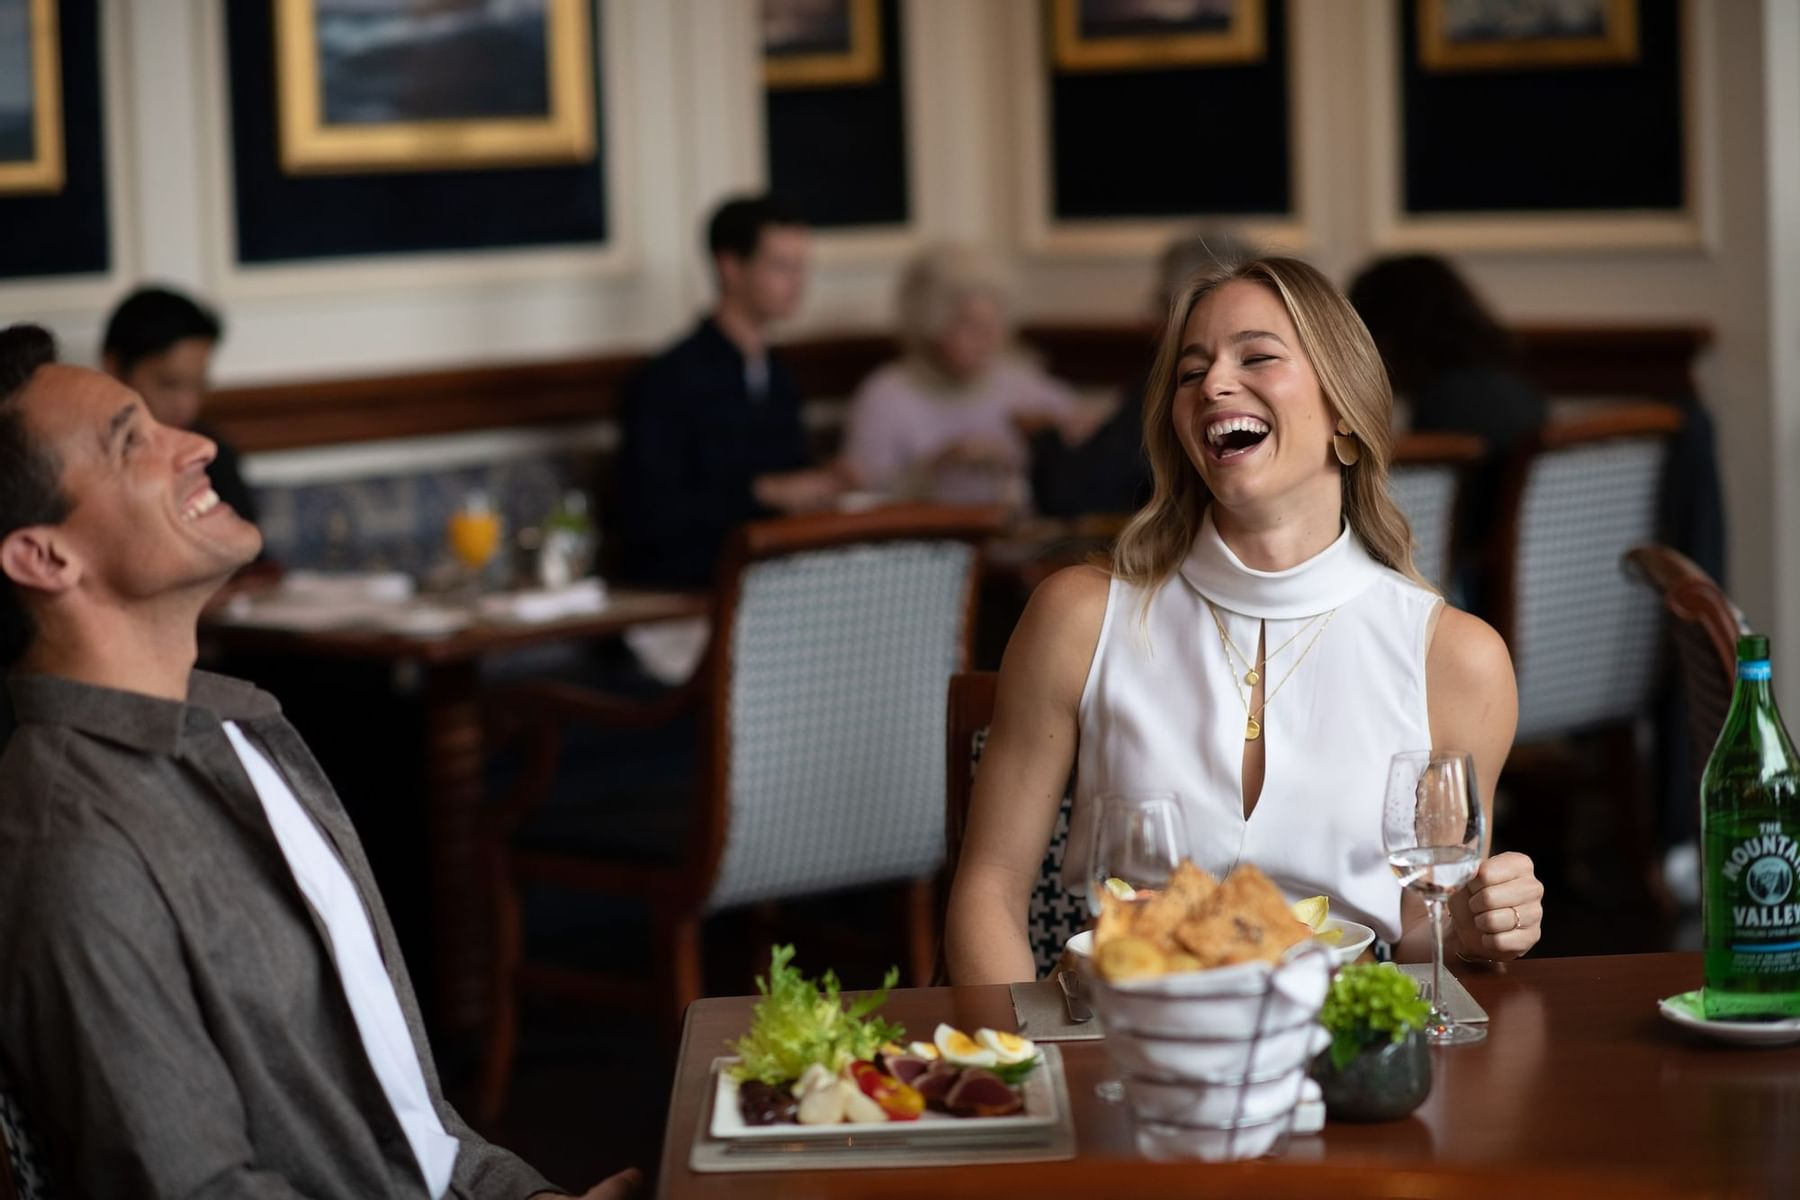 Two guests laughing at a dinner table